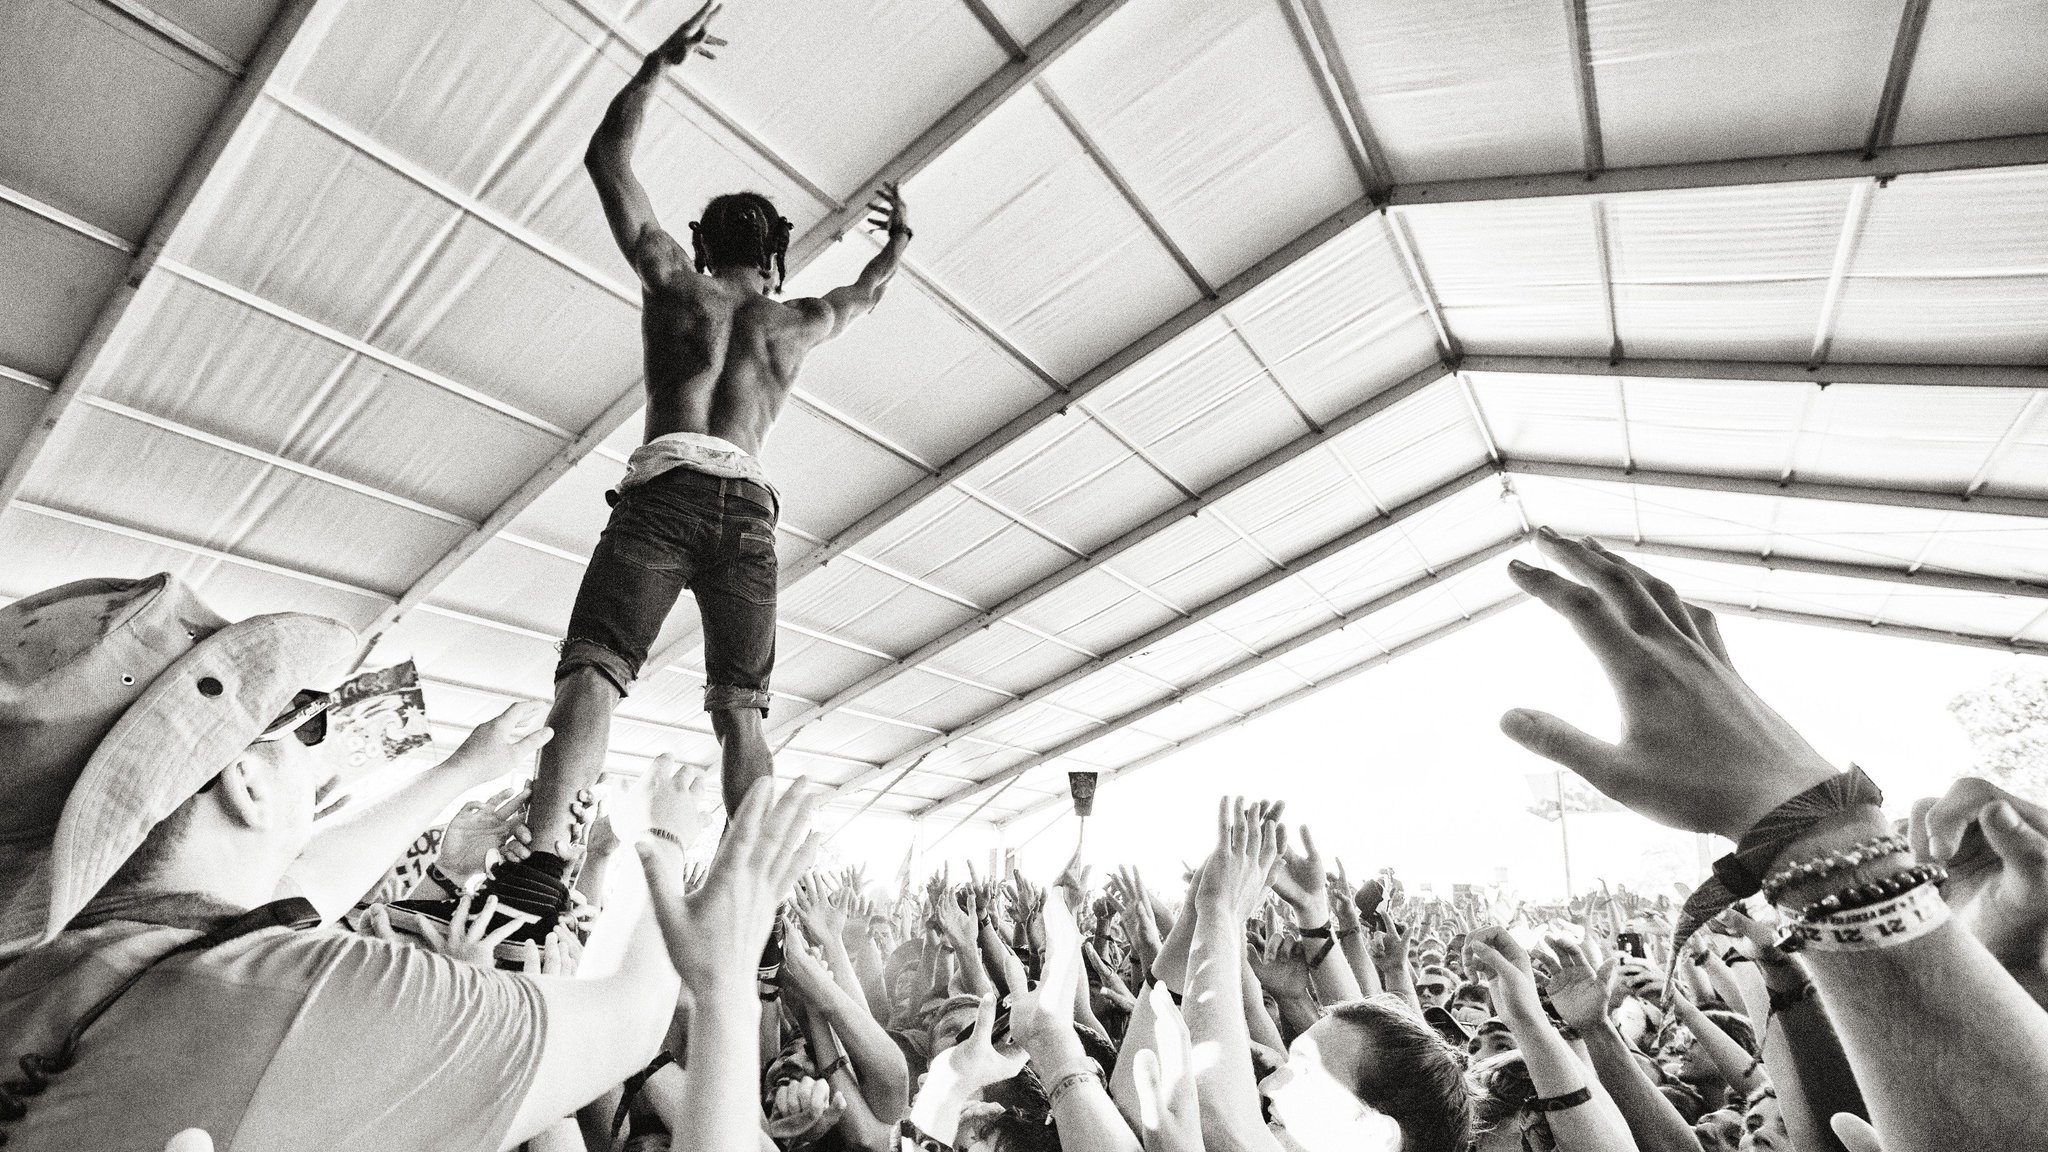 #TBT to #Bonnaroo 2014: walking above the crowd at @ASAPferg  (��: @TomkinsonPhoto) https://t.co/5nSRUc4PBB